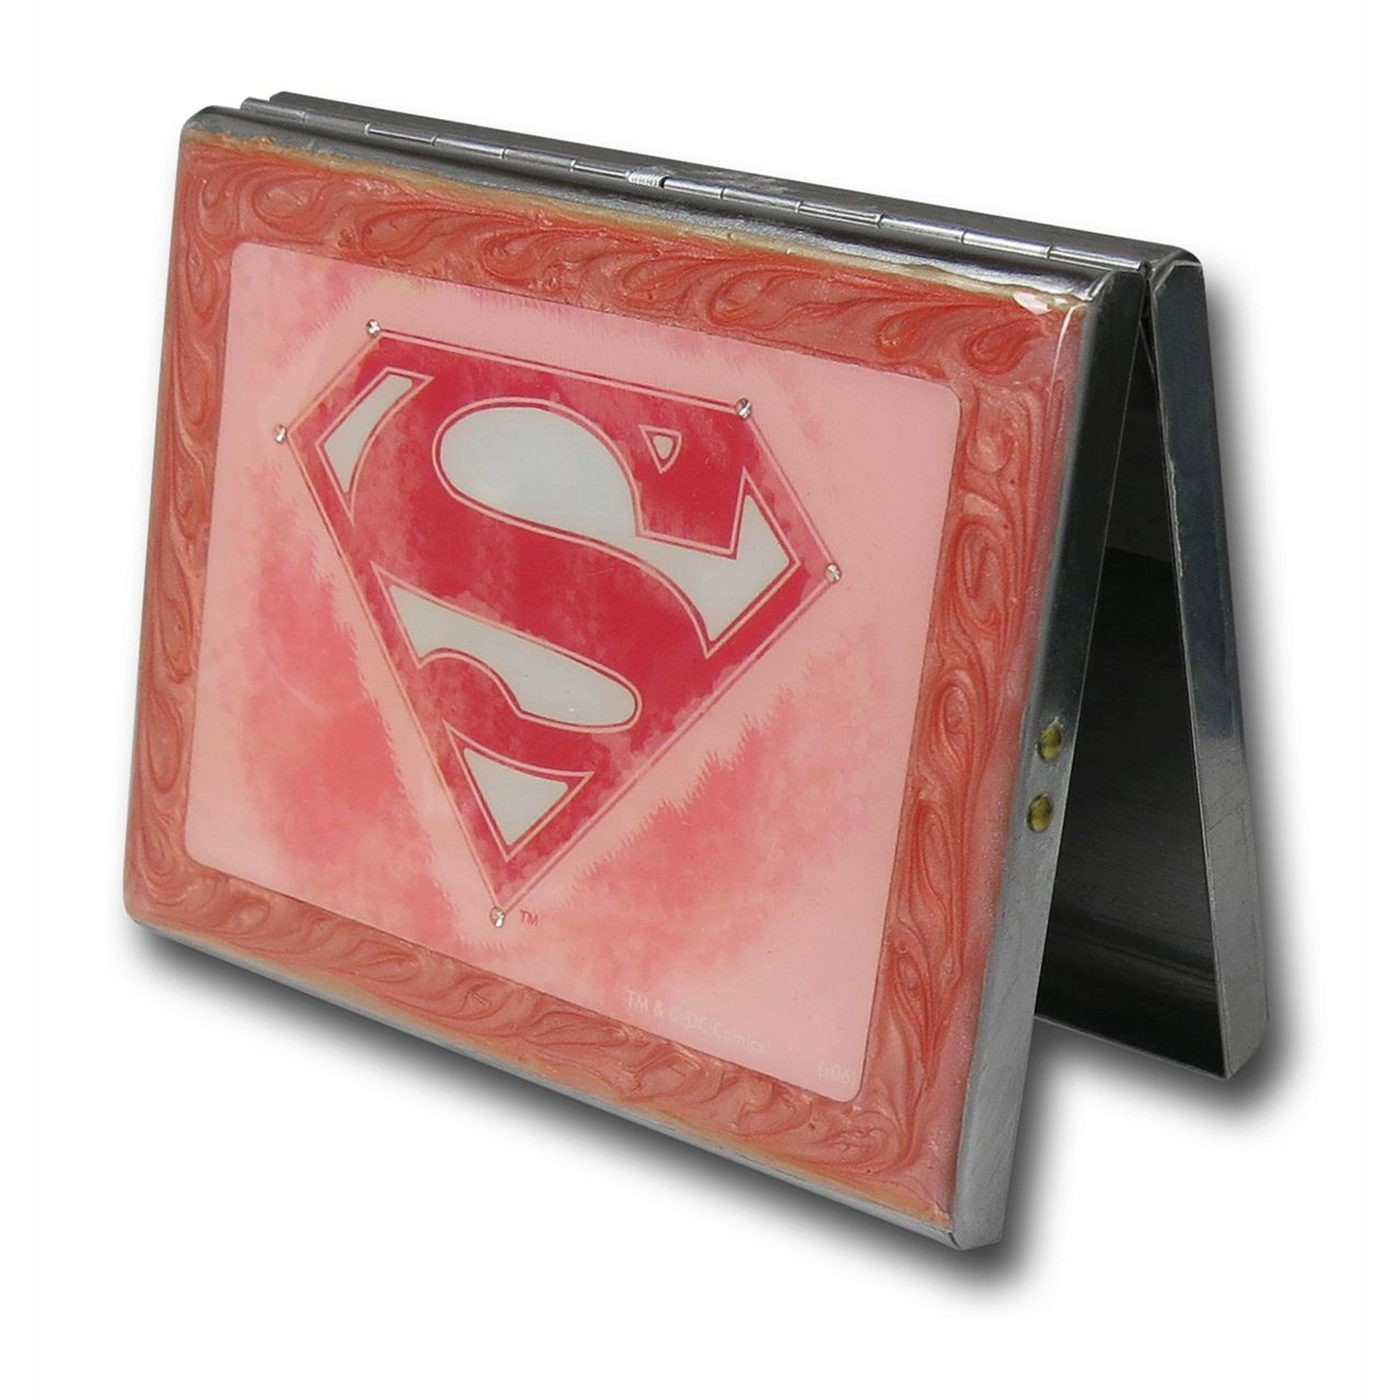 Supergirl Symbol Metal Tin Box